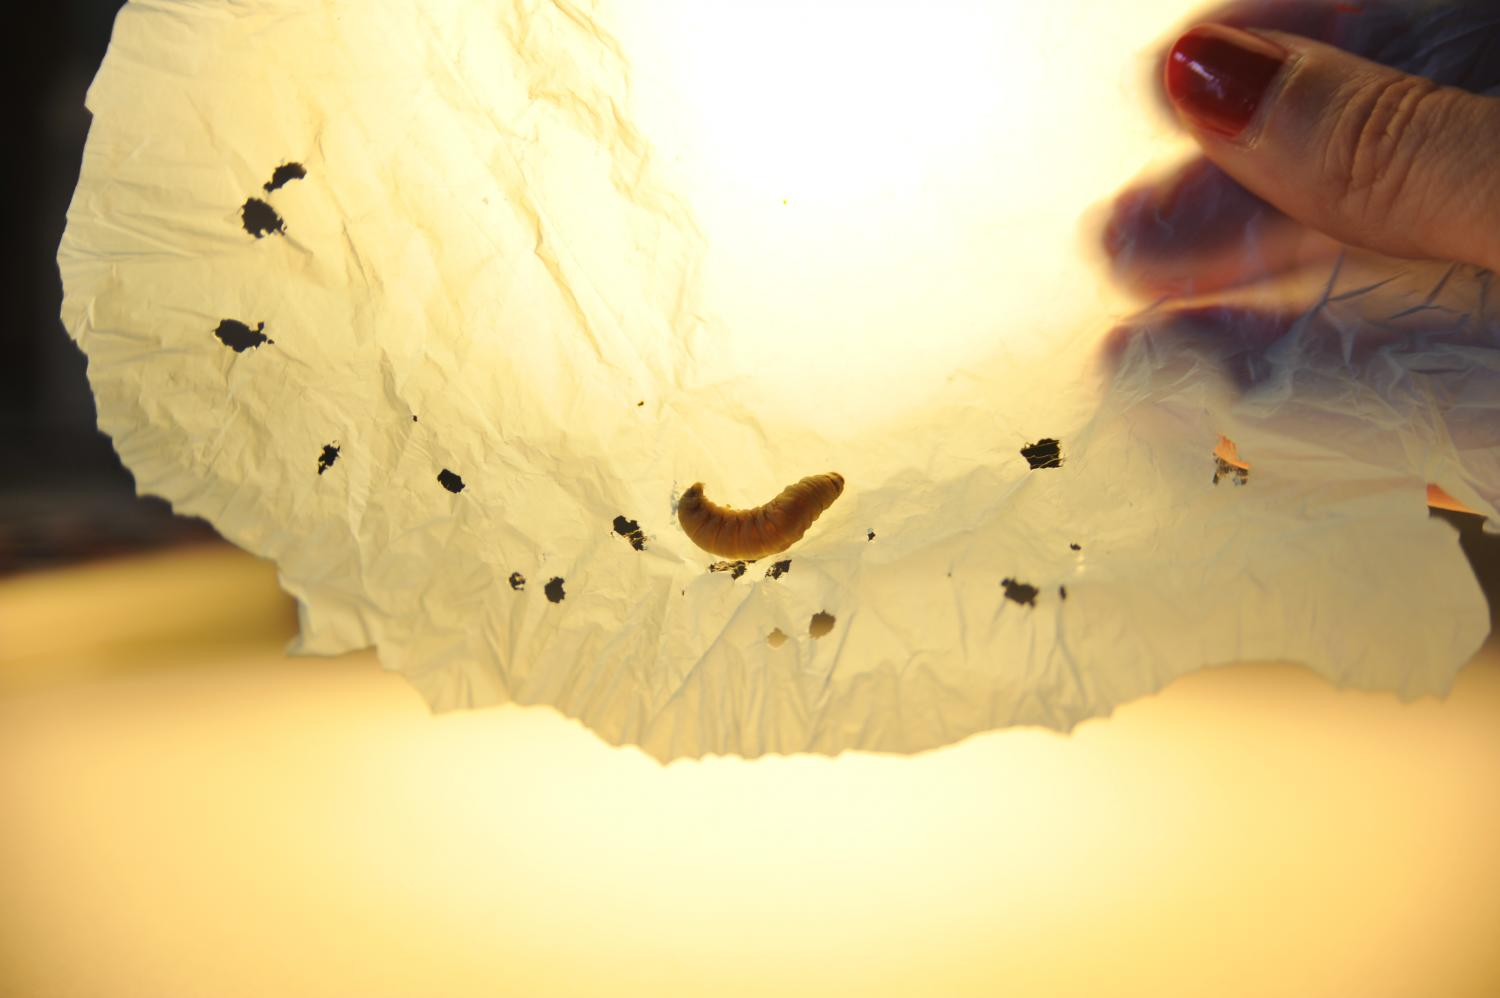 Icky wax worms could offer solution biodegrading plastic bags